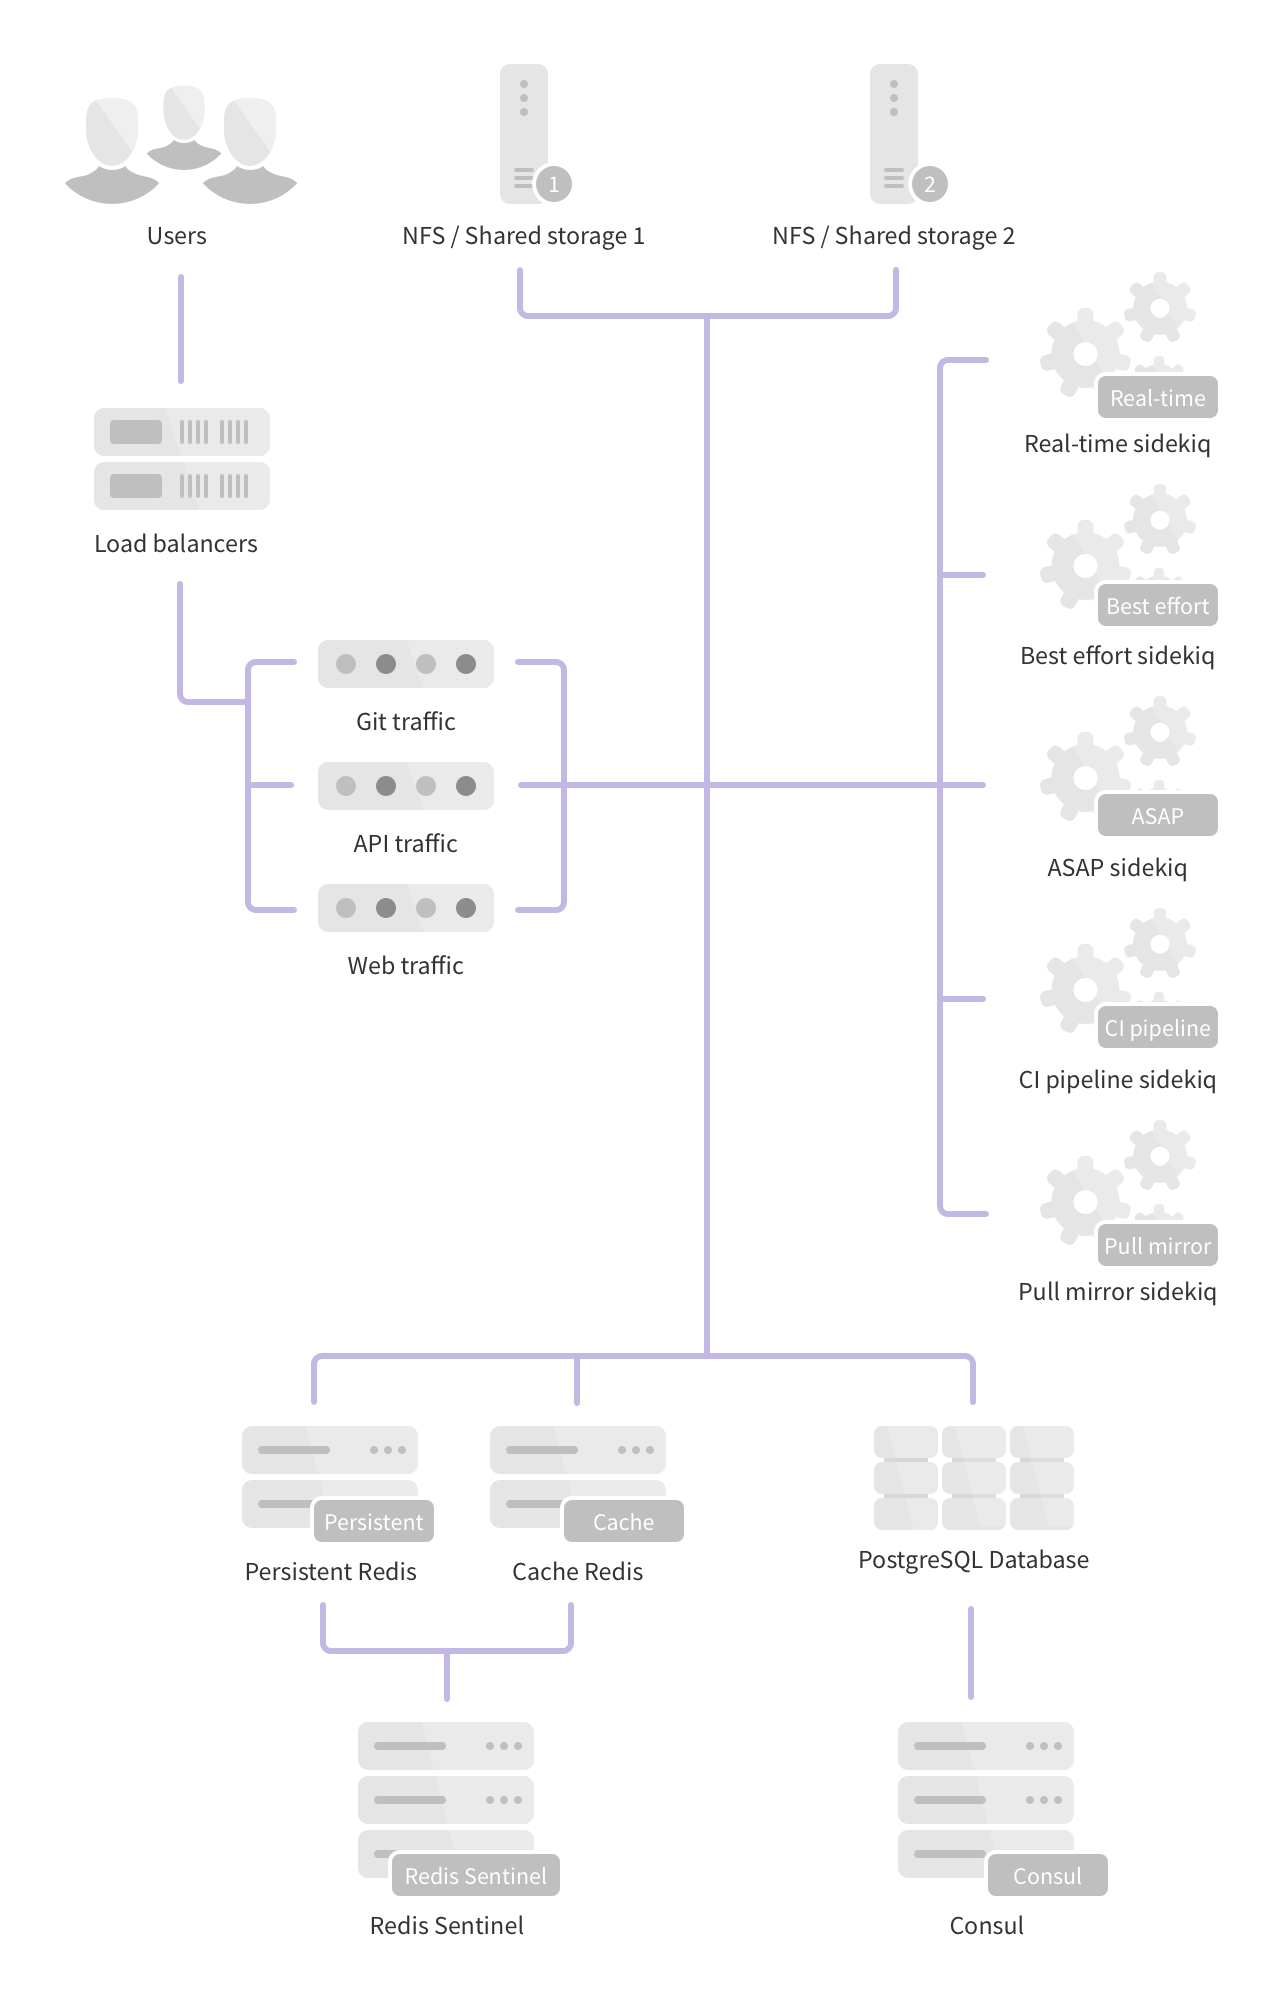 doc/administration/img/high_availability/fully-distributed.png